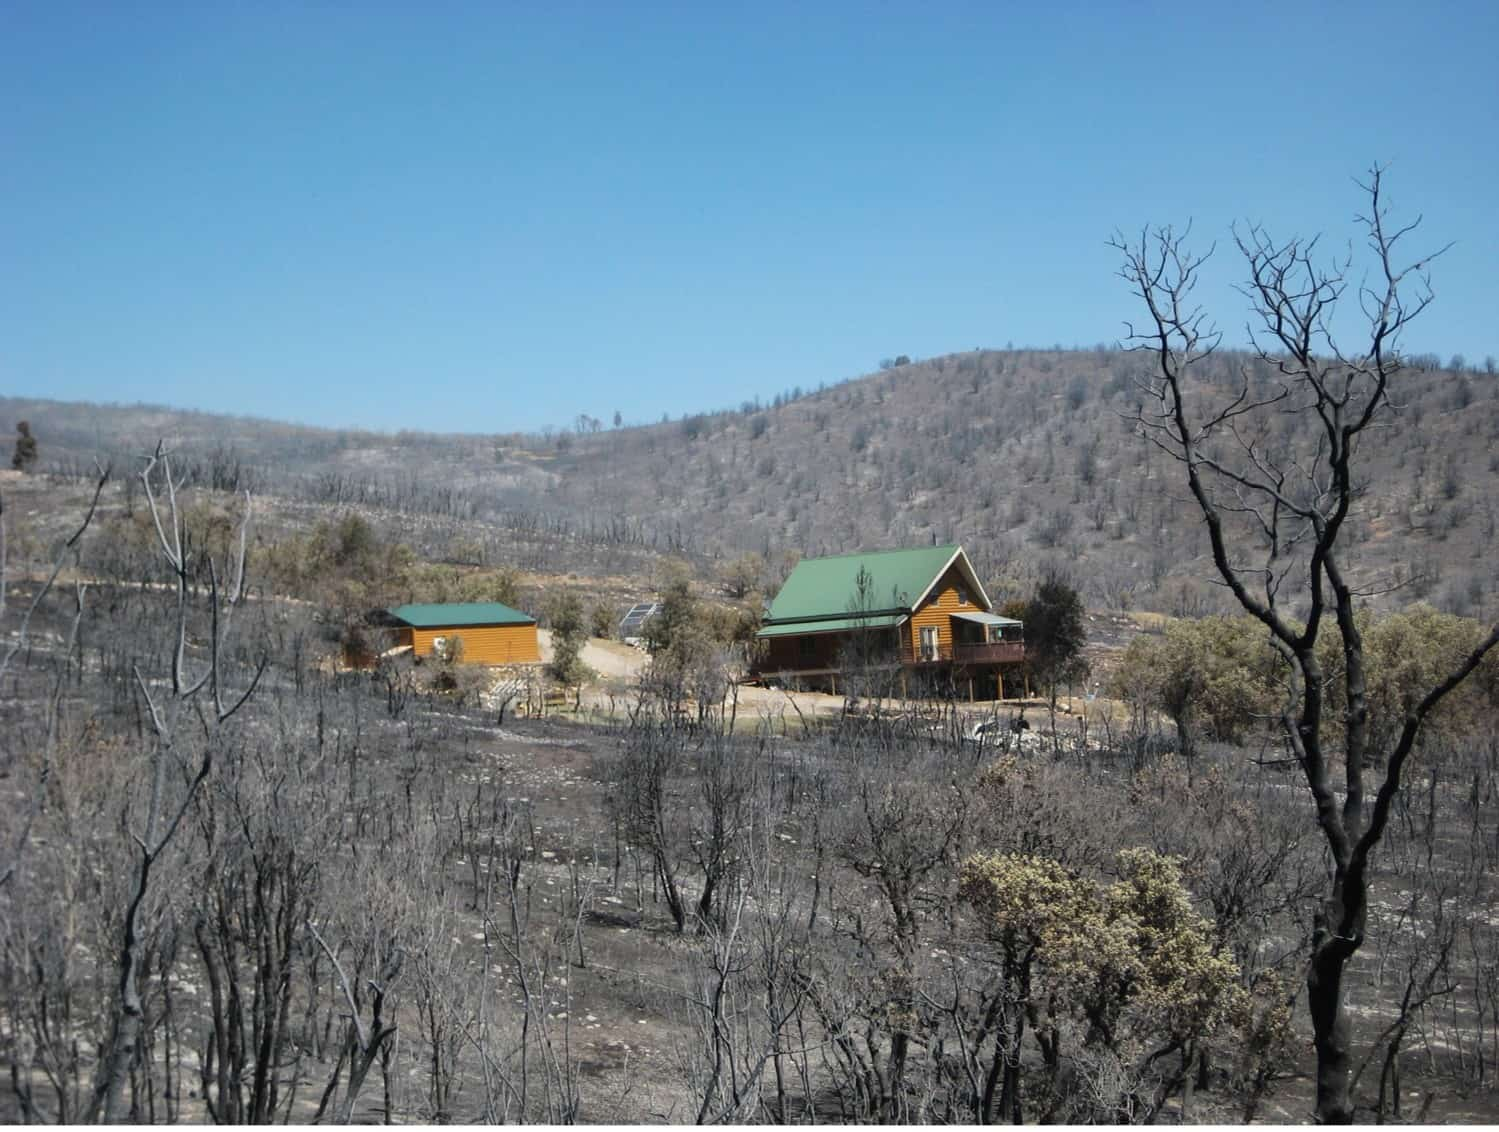 Lone home remaining in an otherwise burnt area. Damage like this inspired Utah's new wildfire policy.